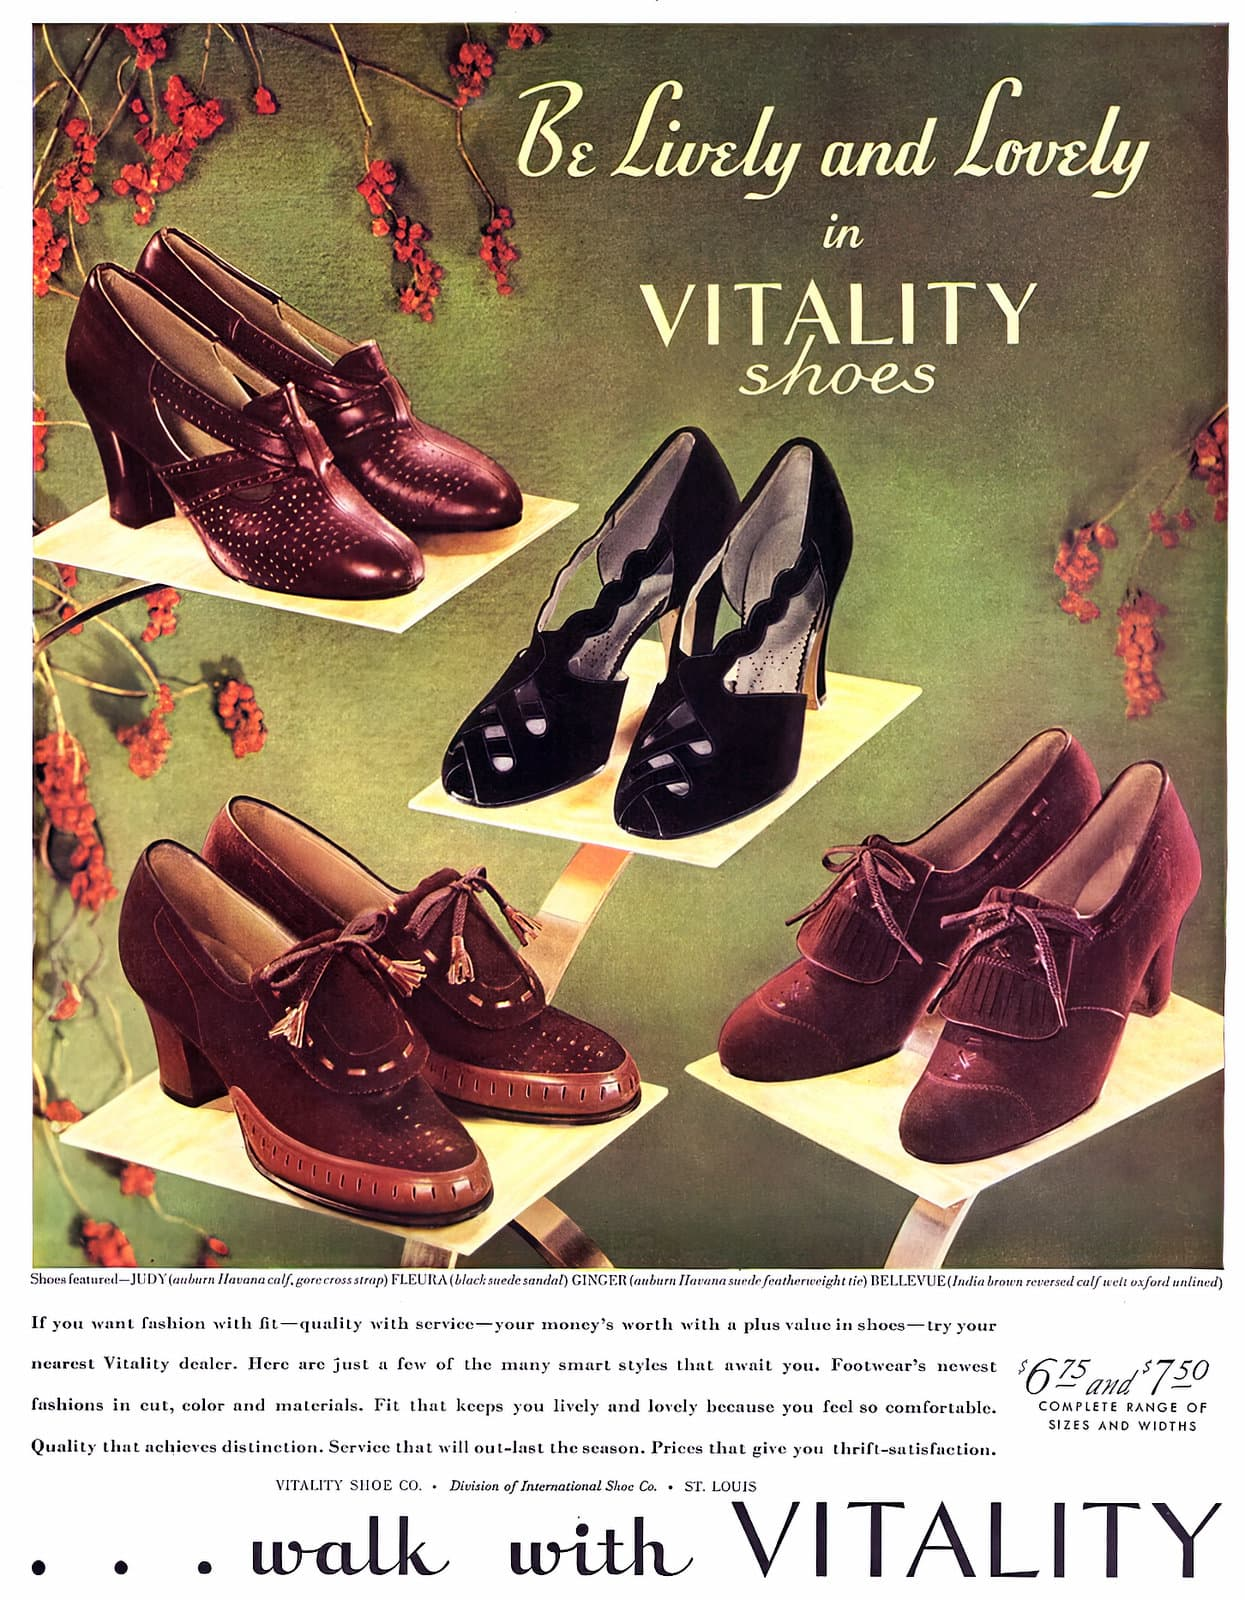 Vintage 1930s shoes for women - Vitality brand